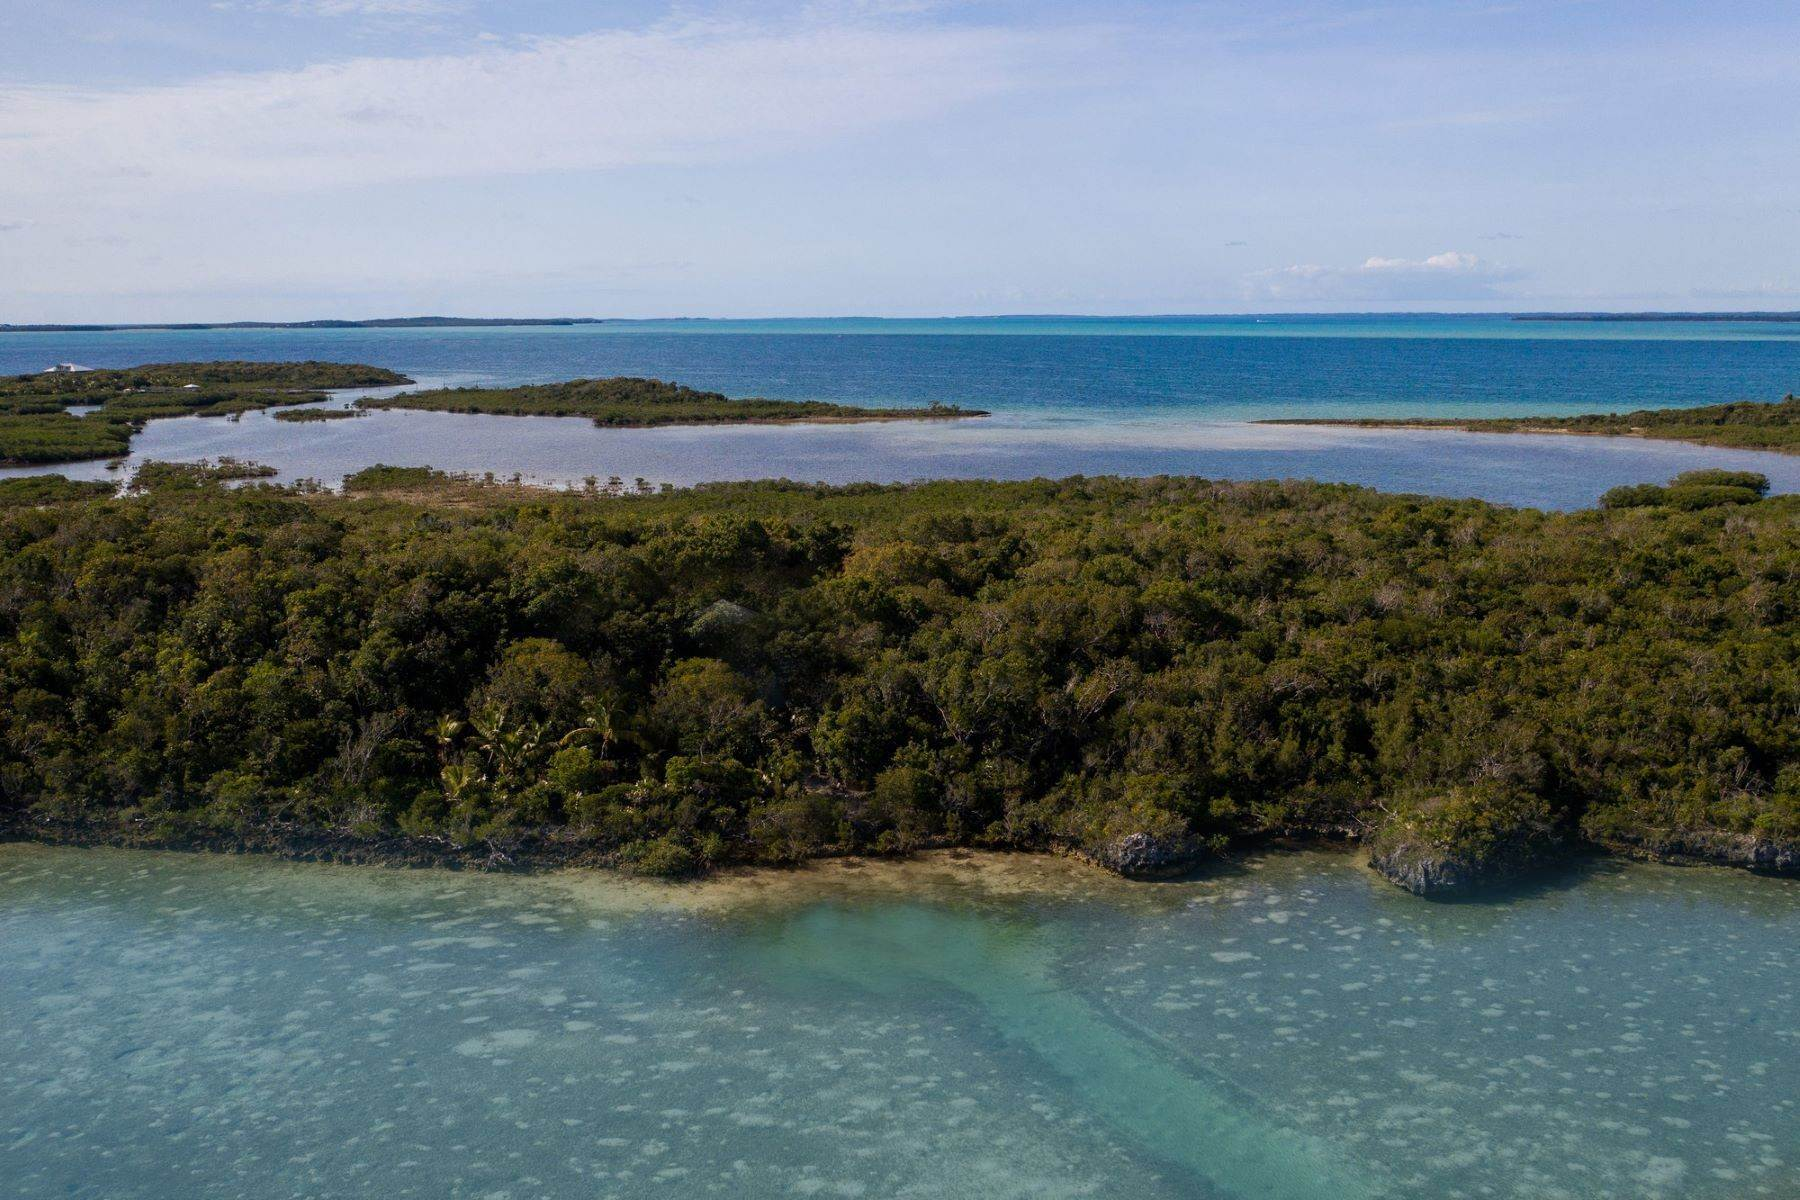 Private Islands for Sale at Marsh Harbour, Abaco Bahamas